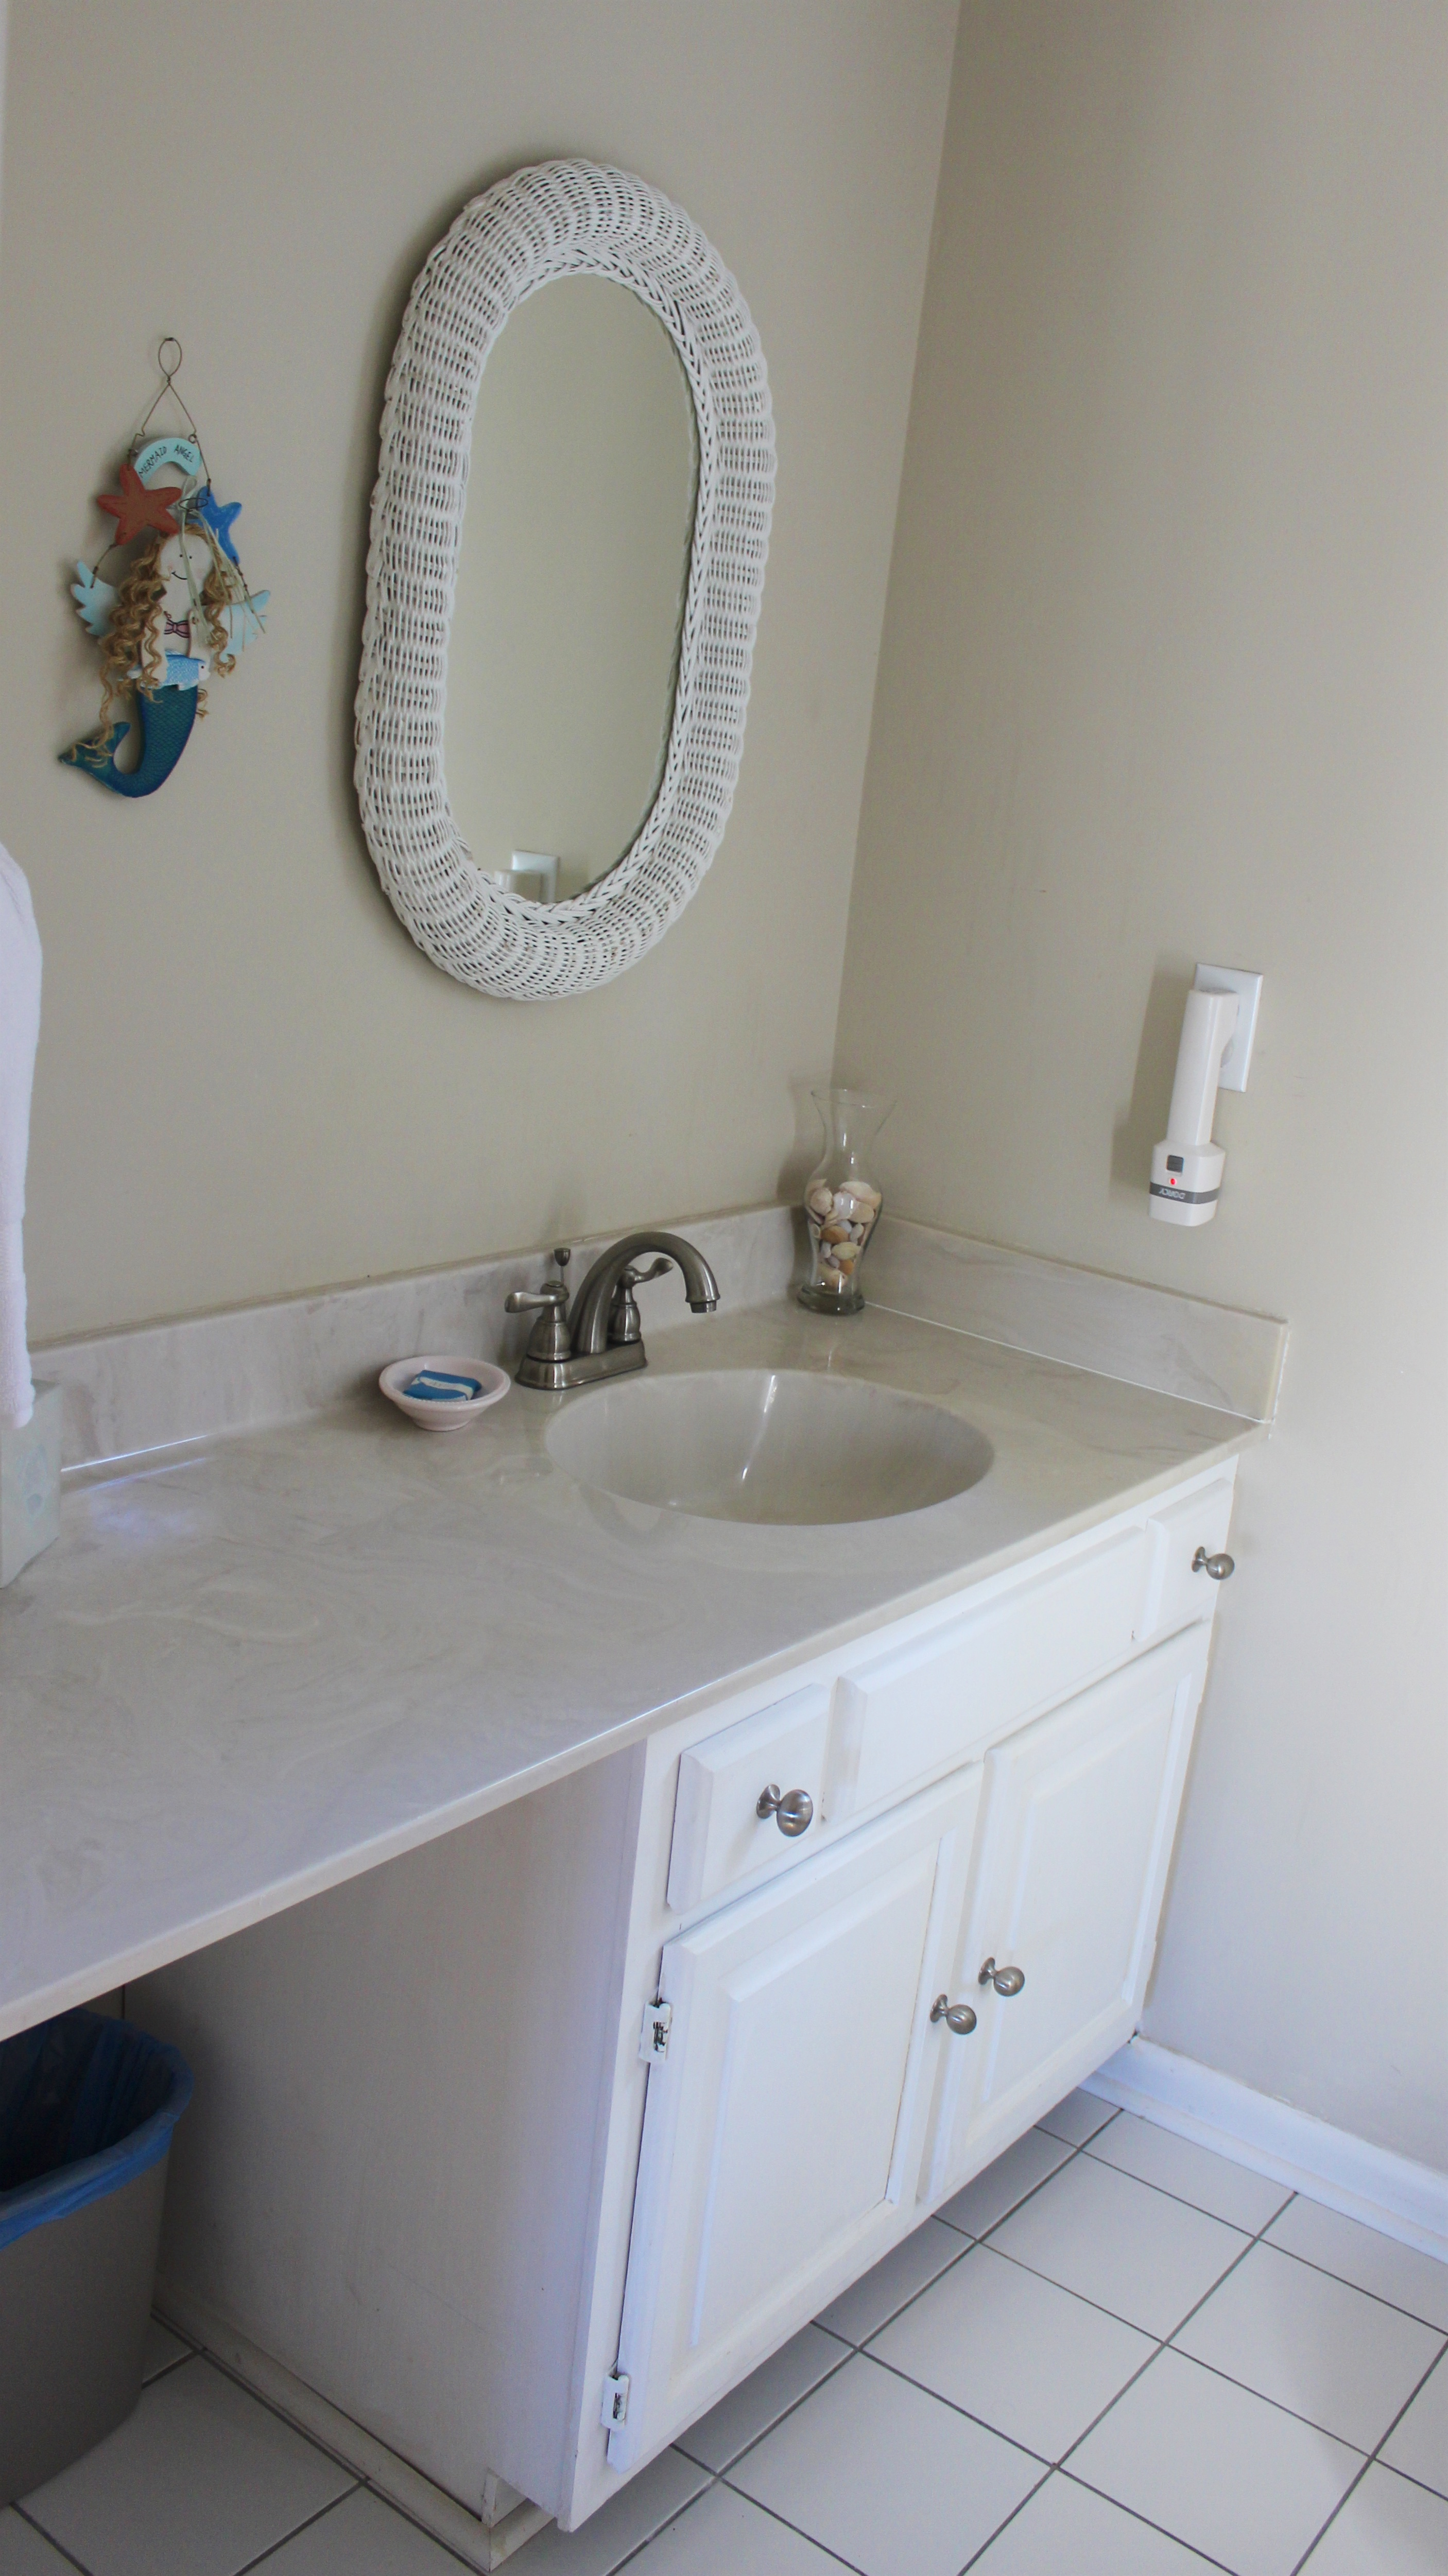 It has a large vanity and file flooring.